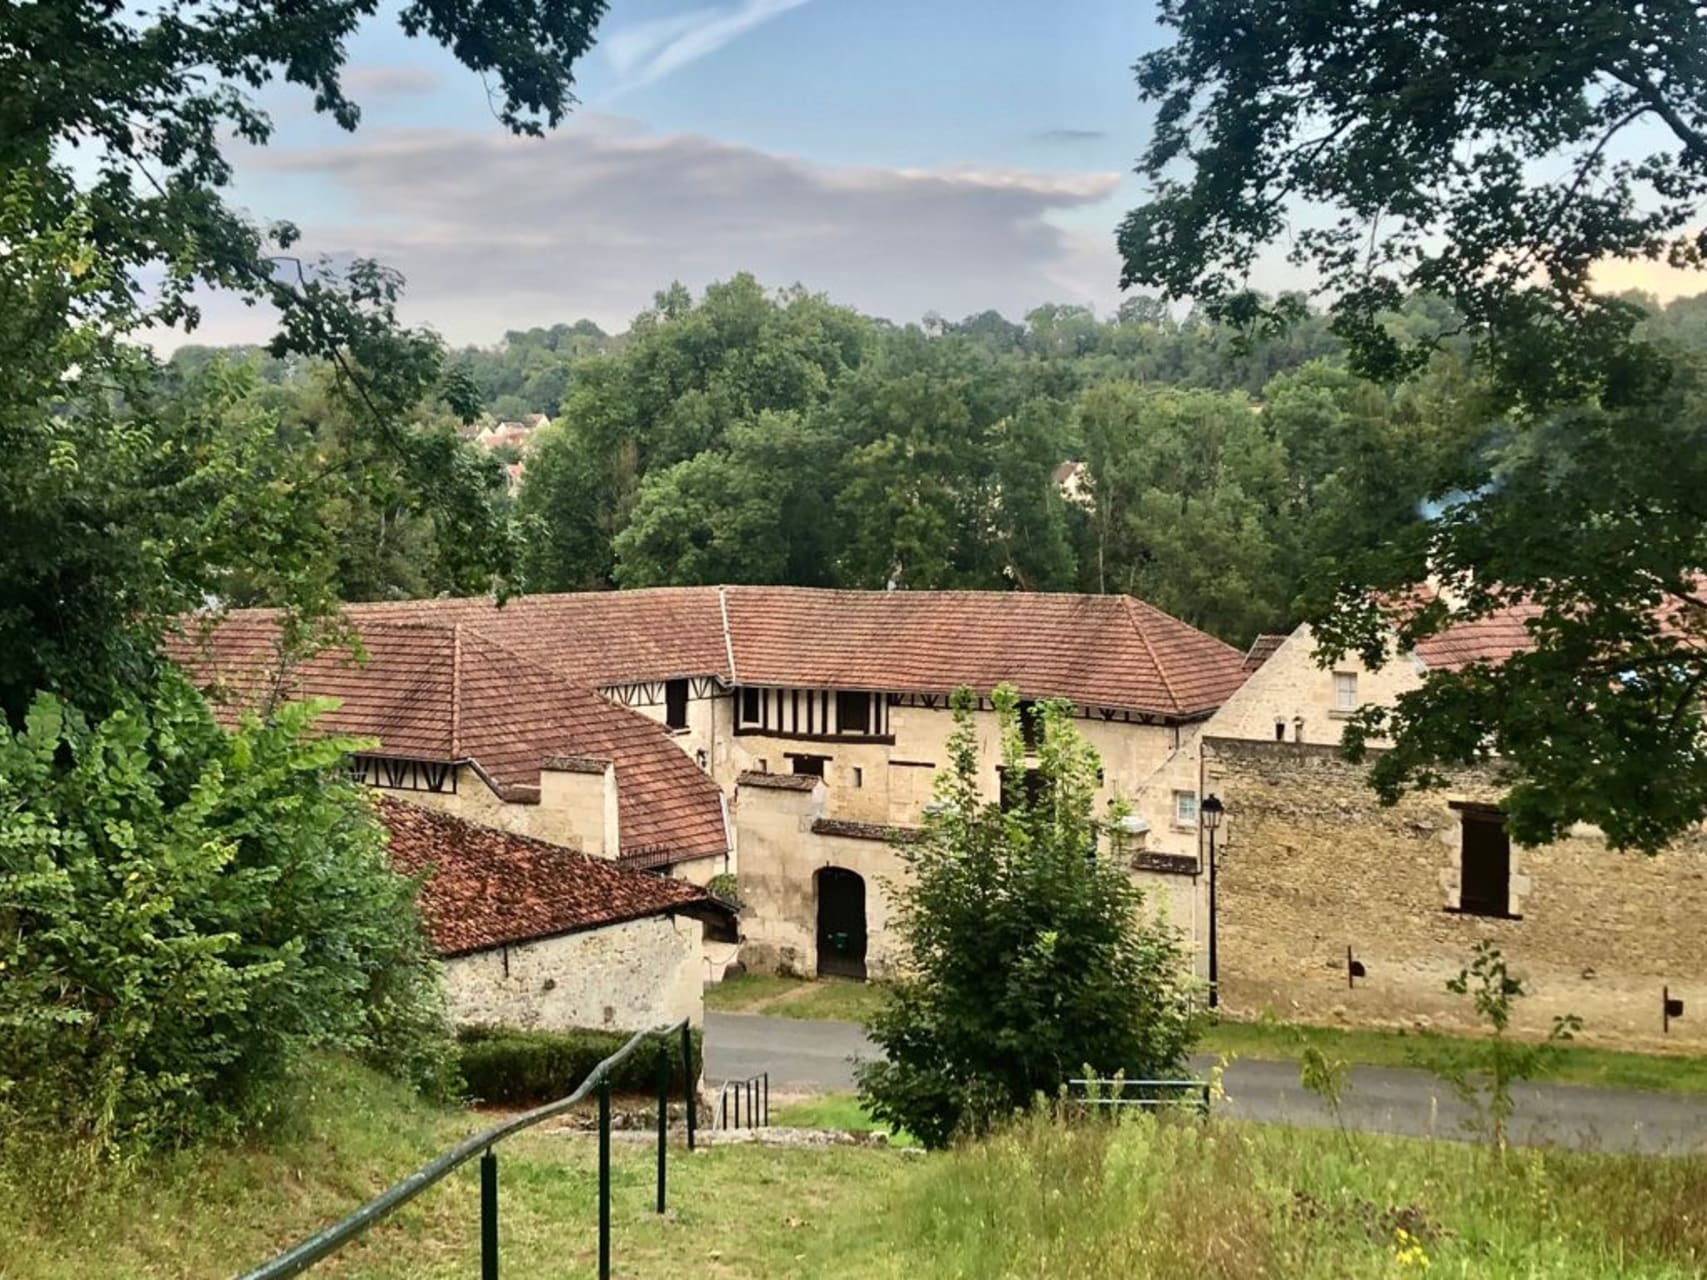 Oise - Glaignes: a Village with a Rural Character